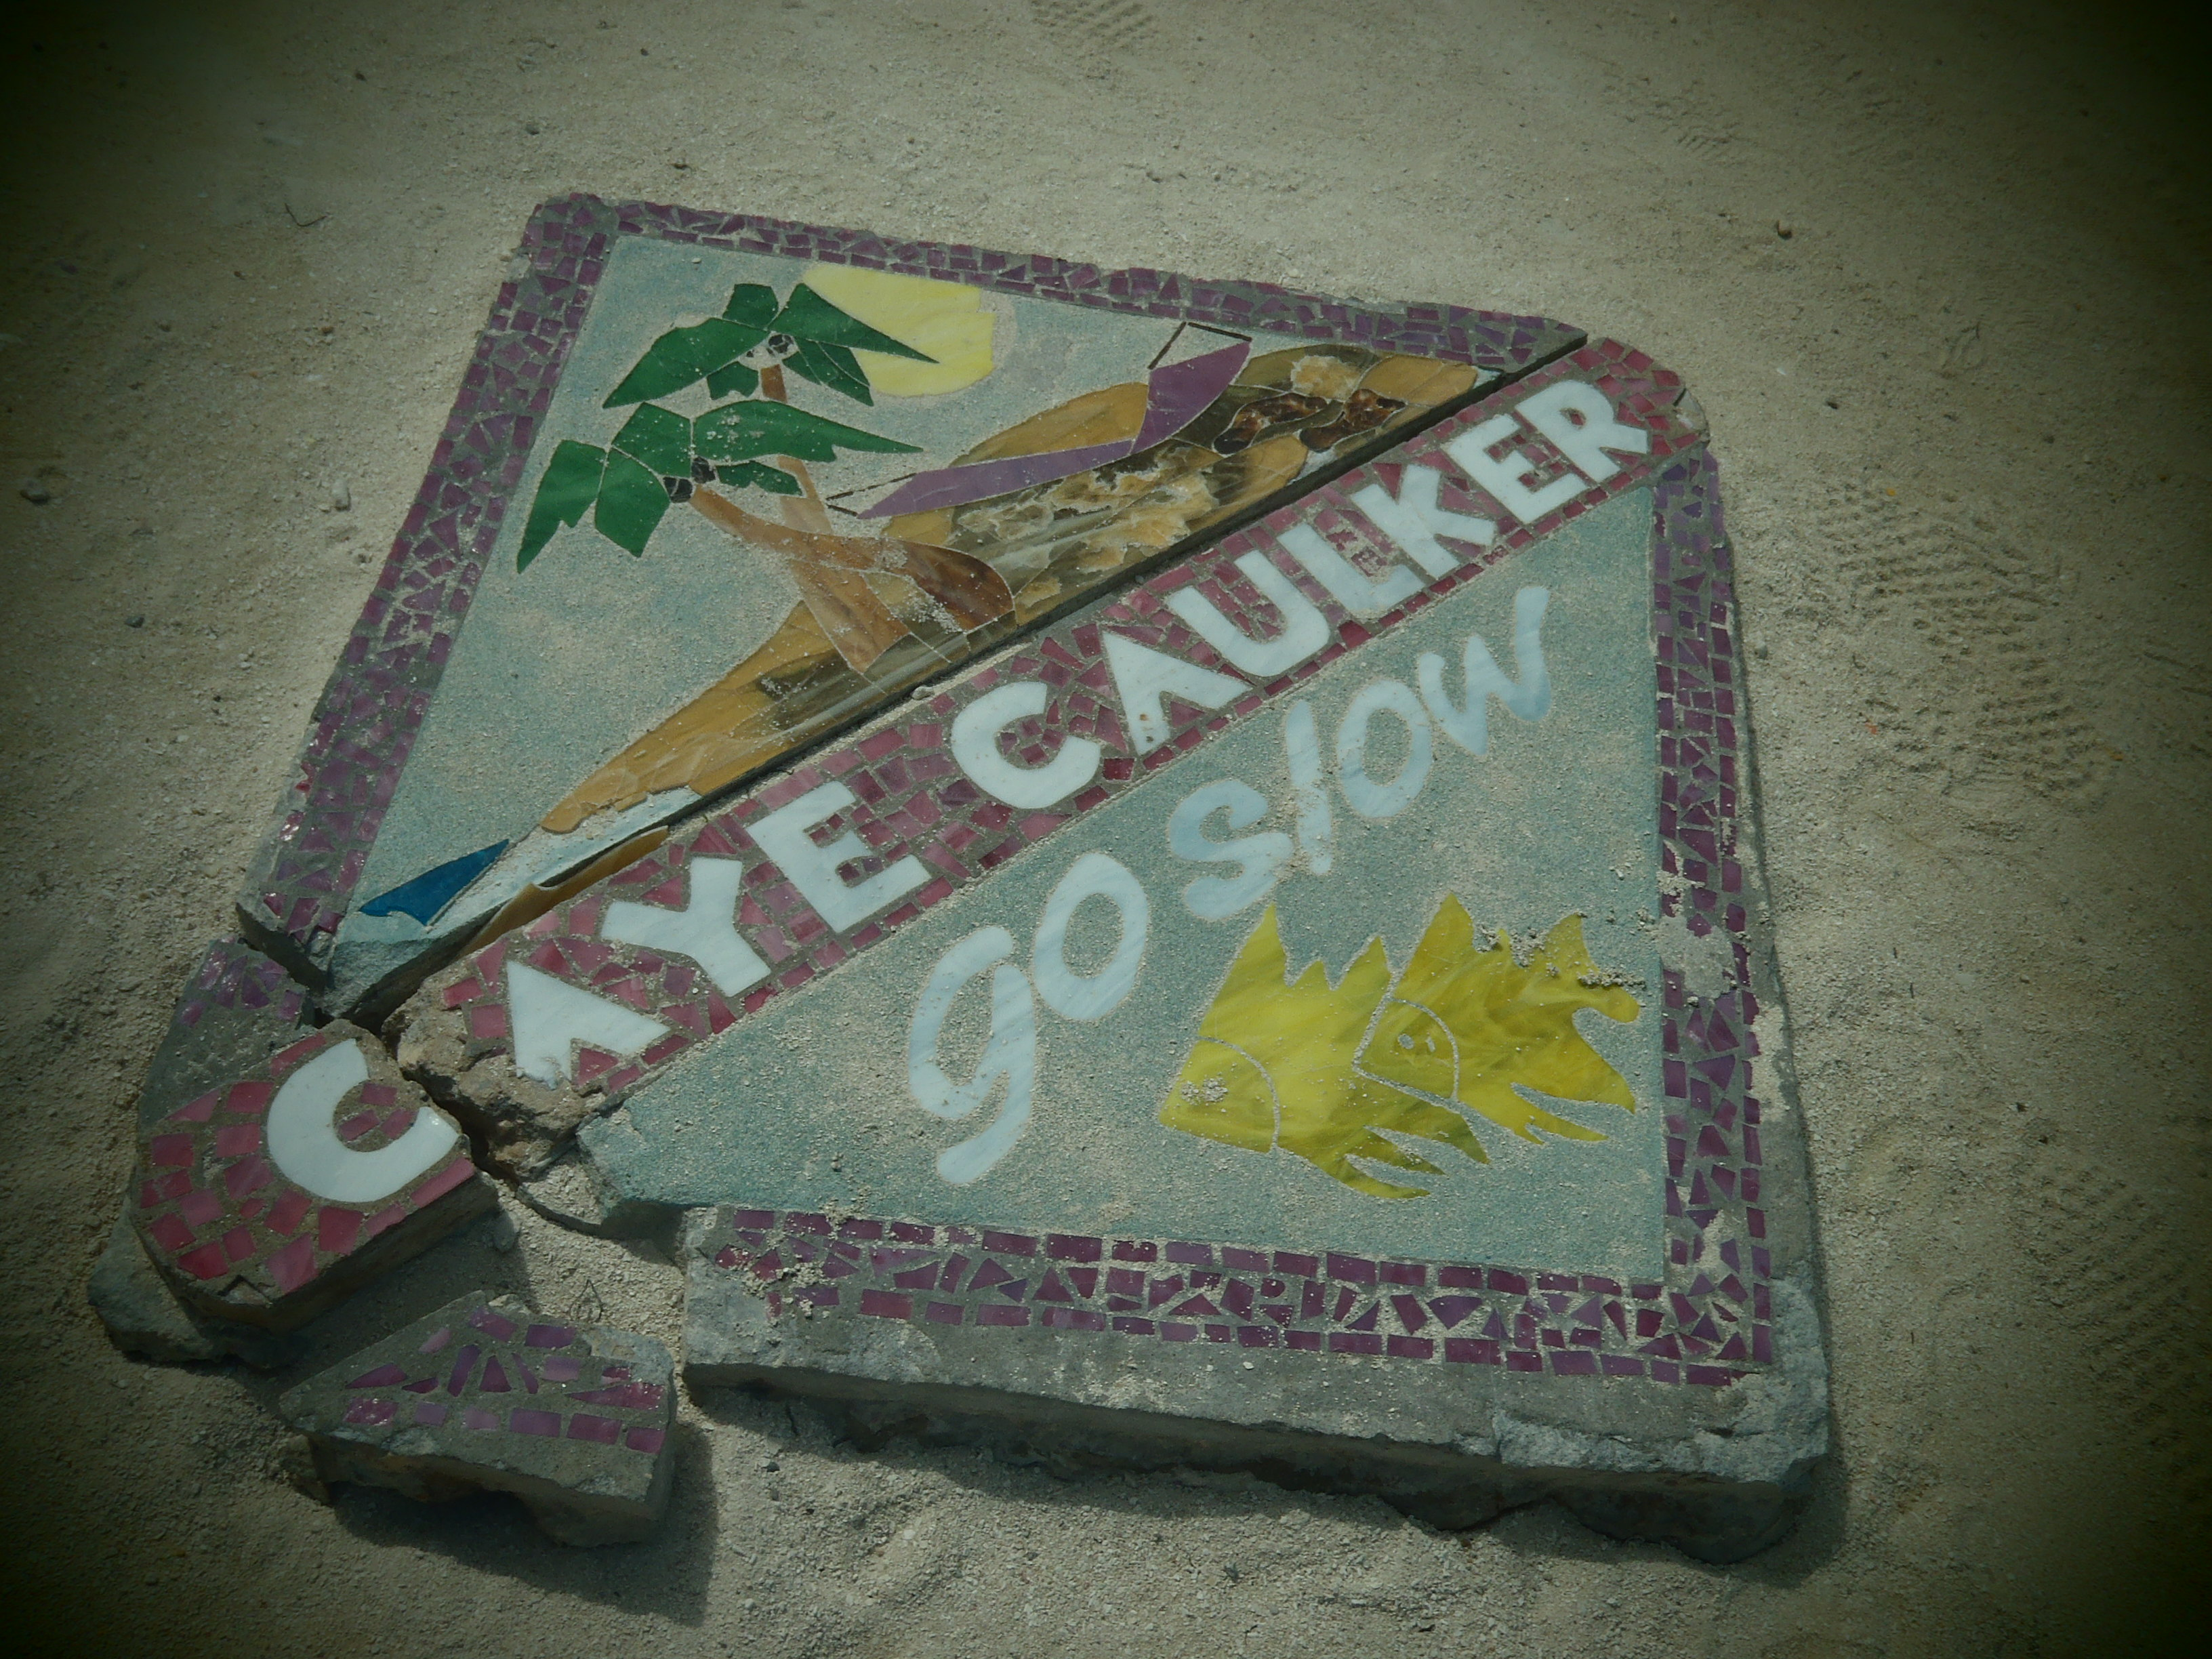 Go Slow; Caye Caulker, Belize; 2013